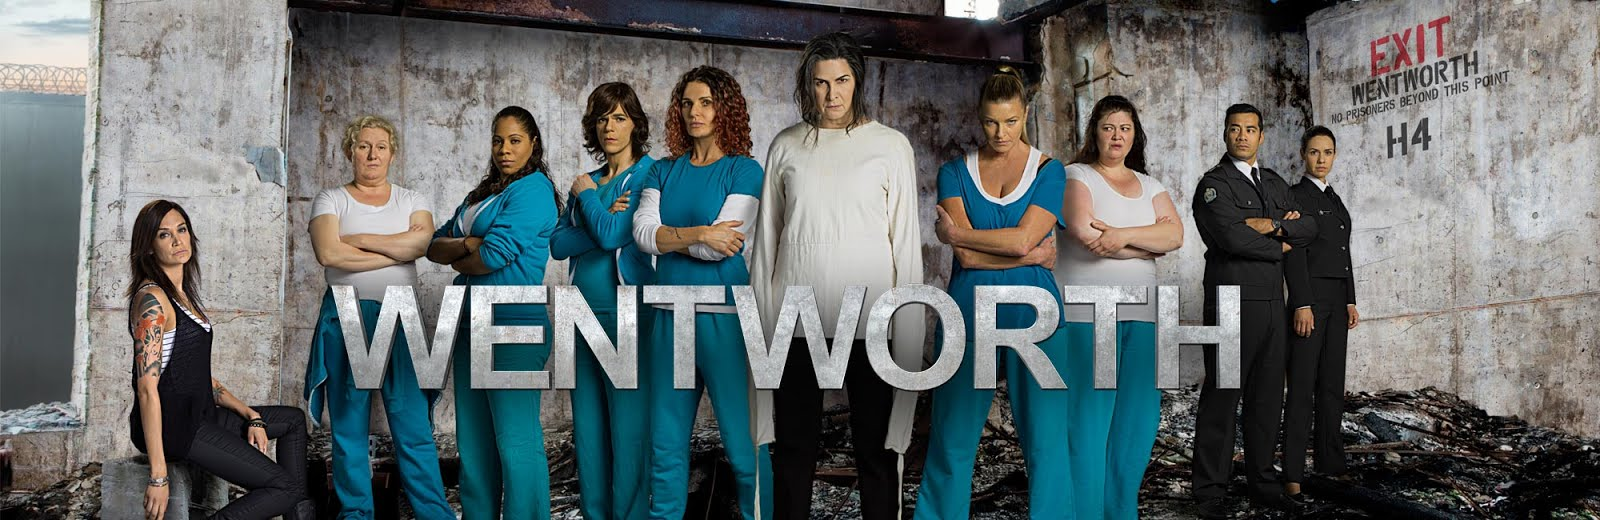 """""""Wentworth"""" Season 4 Projected To Be Released On NetFlix In November Or December"""